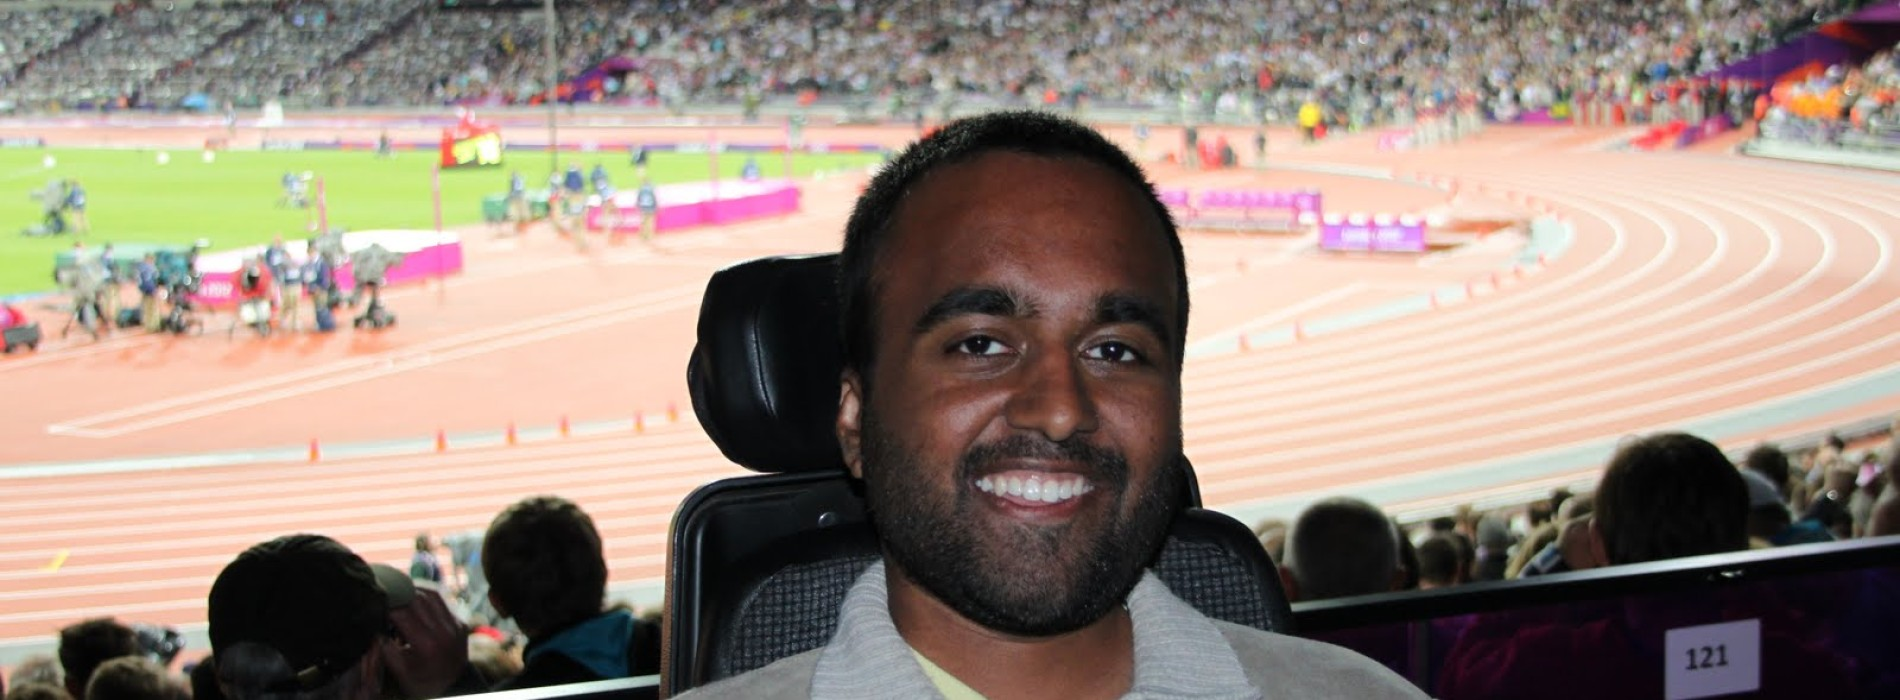 Srin Madipalli: get me to the Olympic Games!